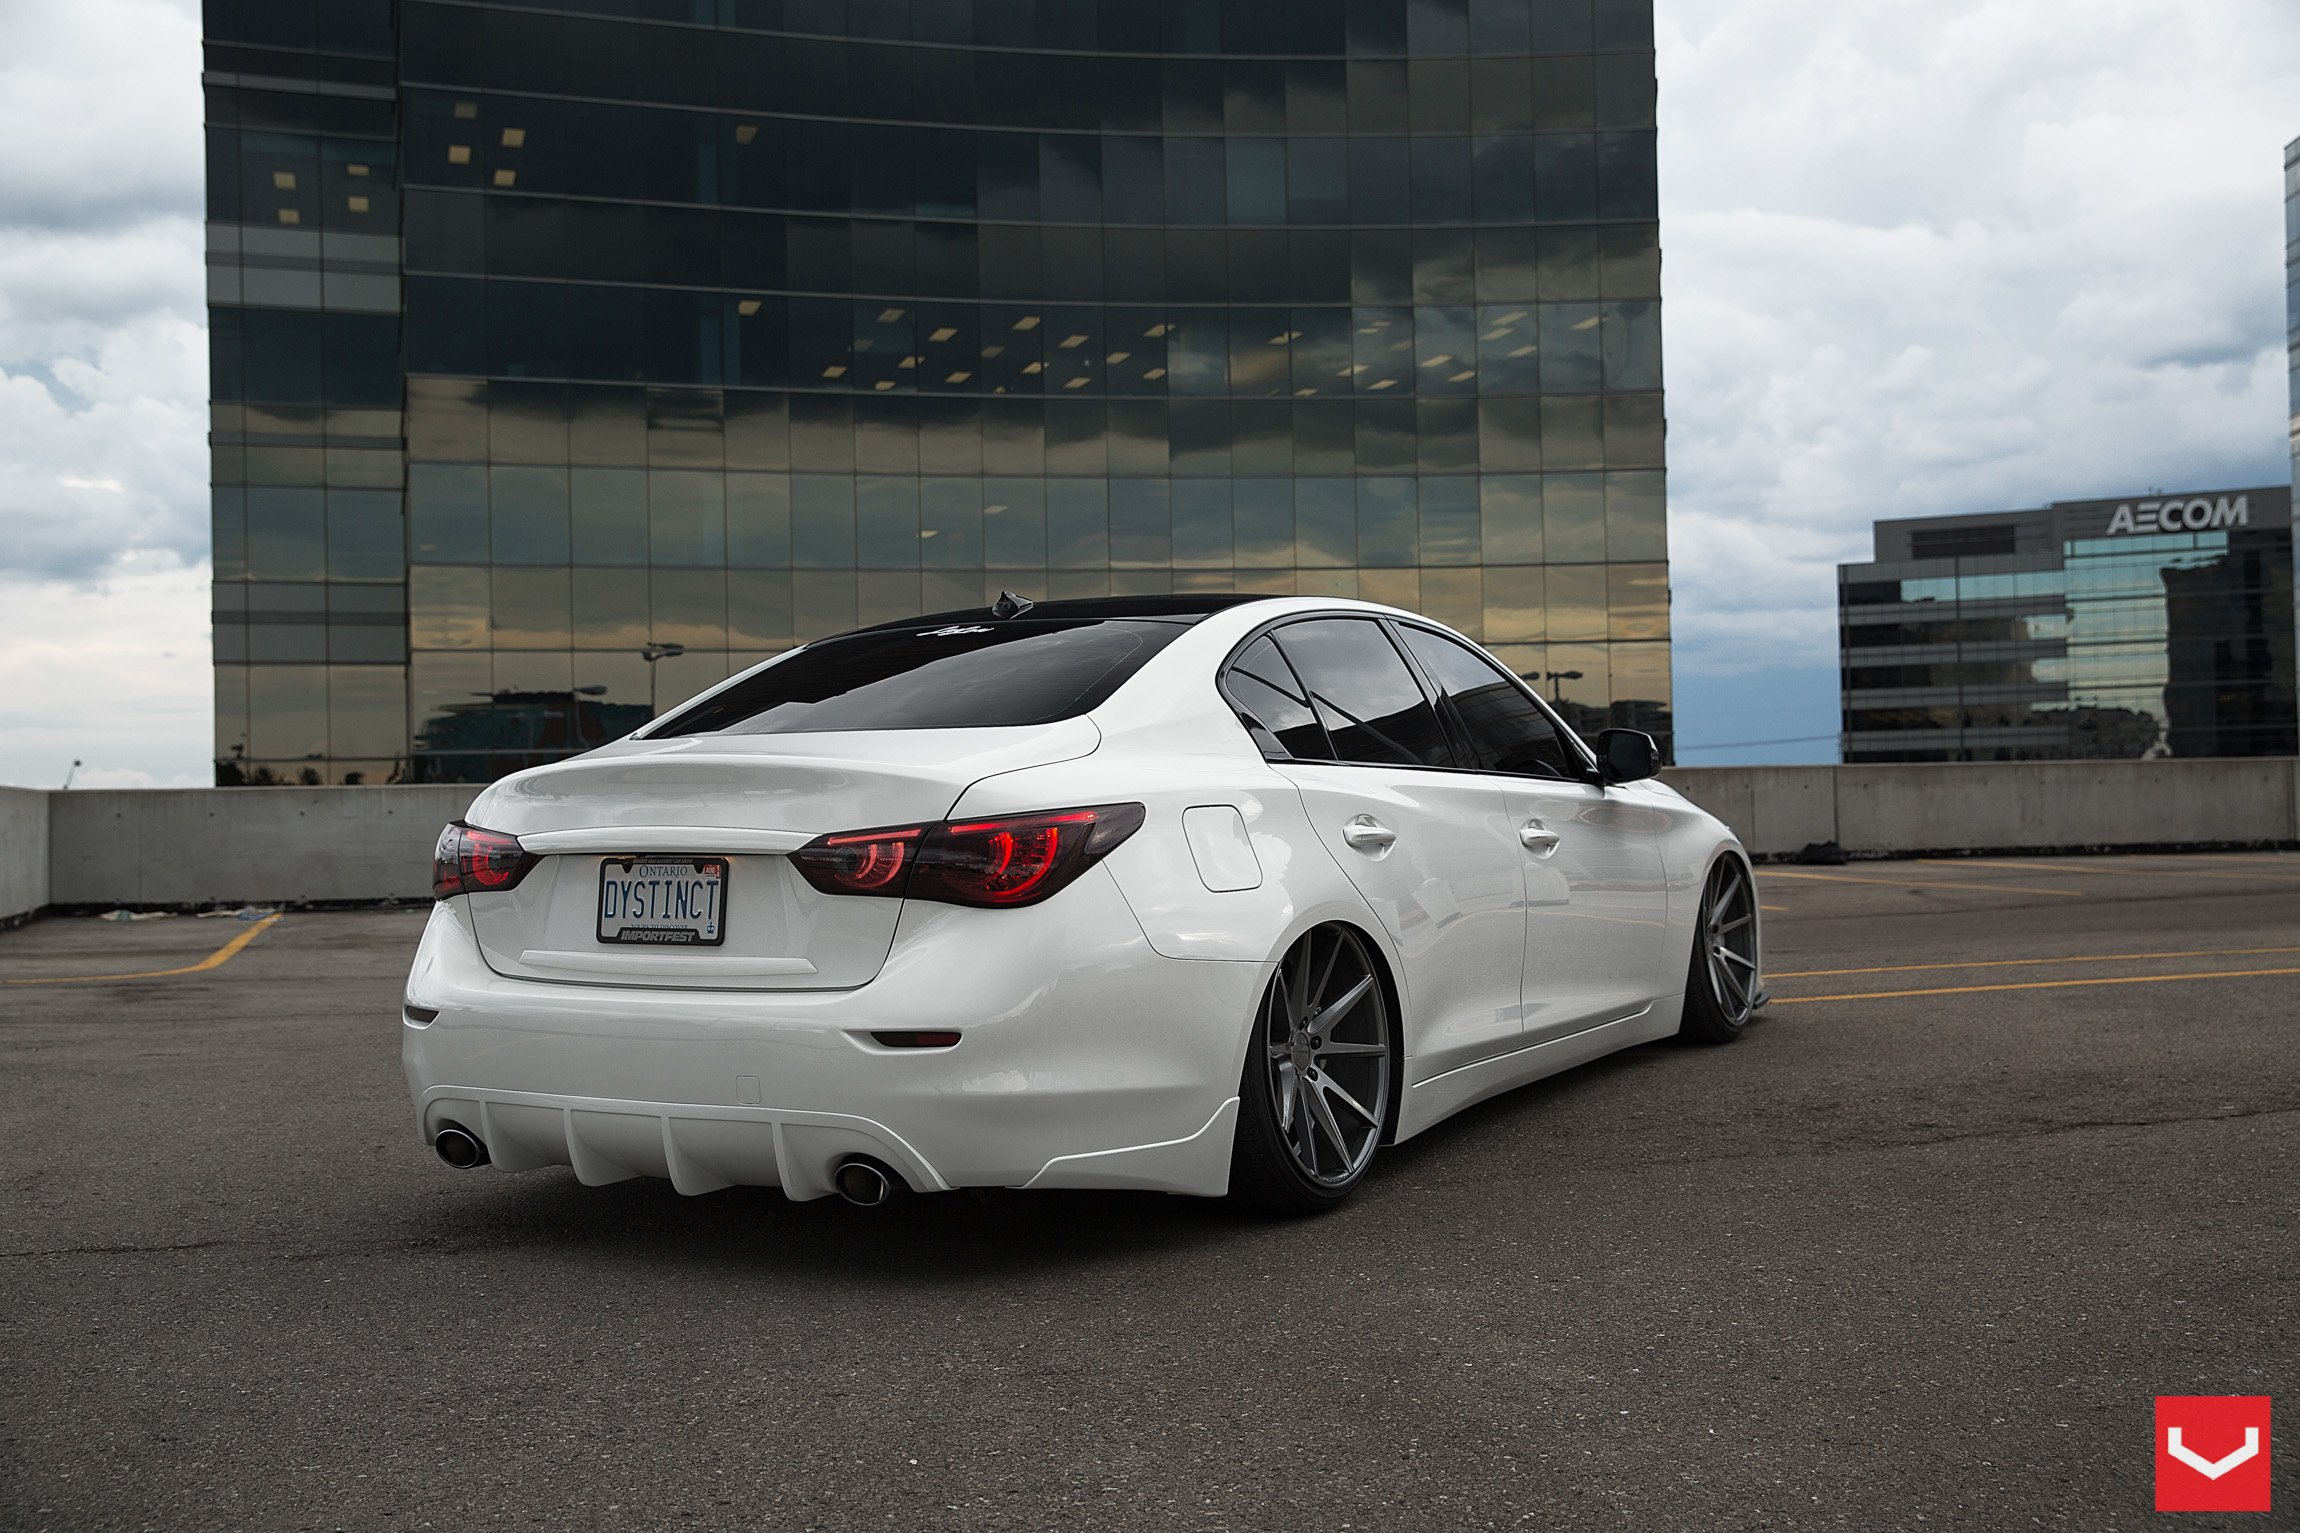 Infiniti Q50 Vossen Wheels Tuning Wallpaper 2300x1533